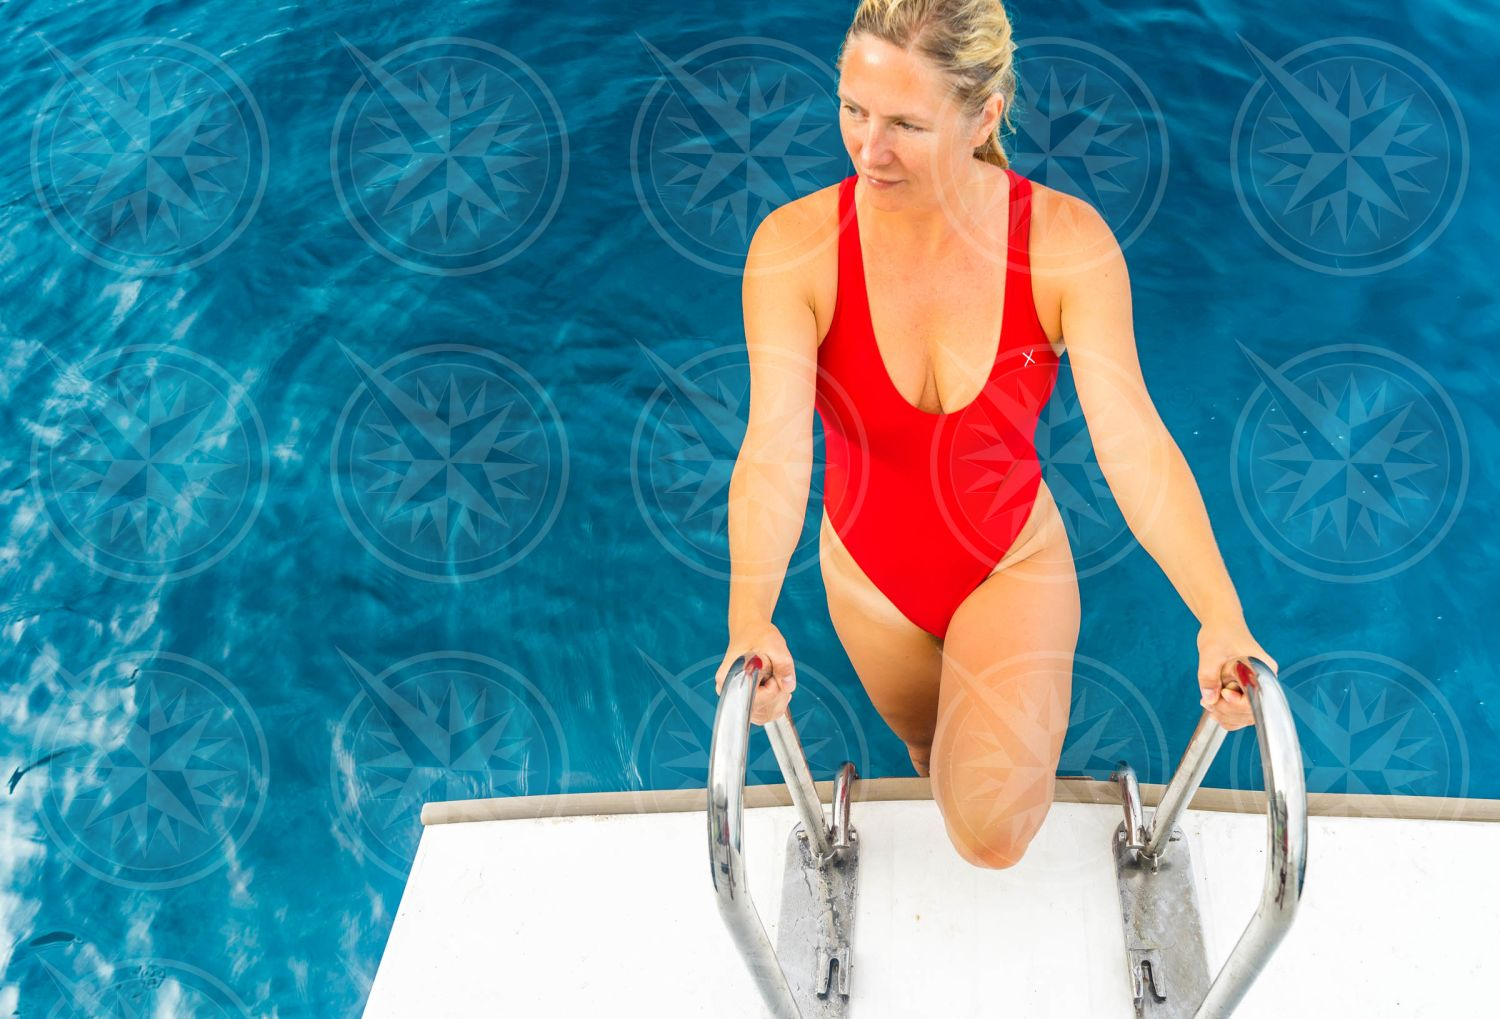 Woman in red swimsuit climbing swim ladder